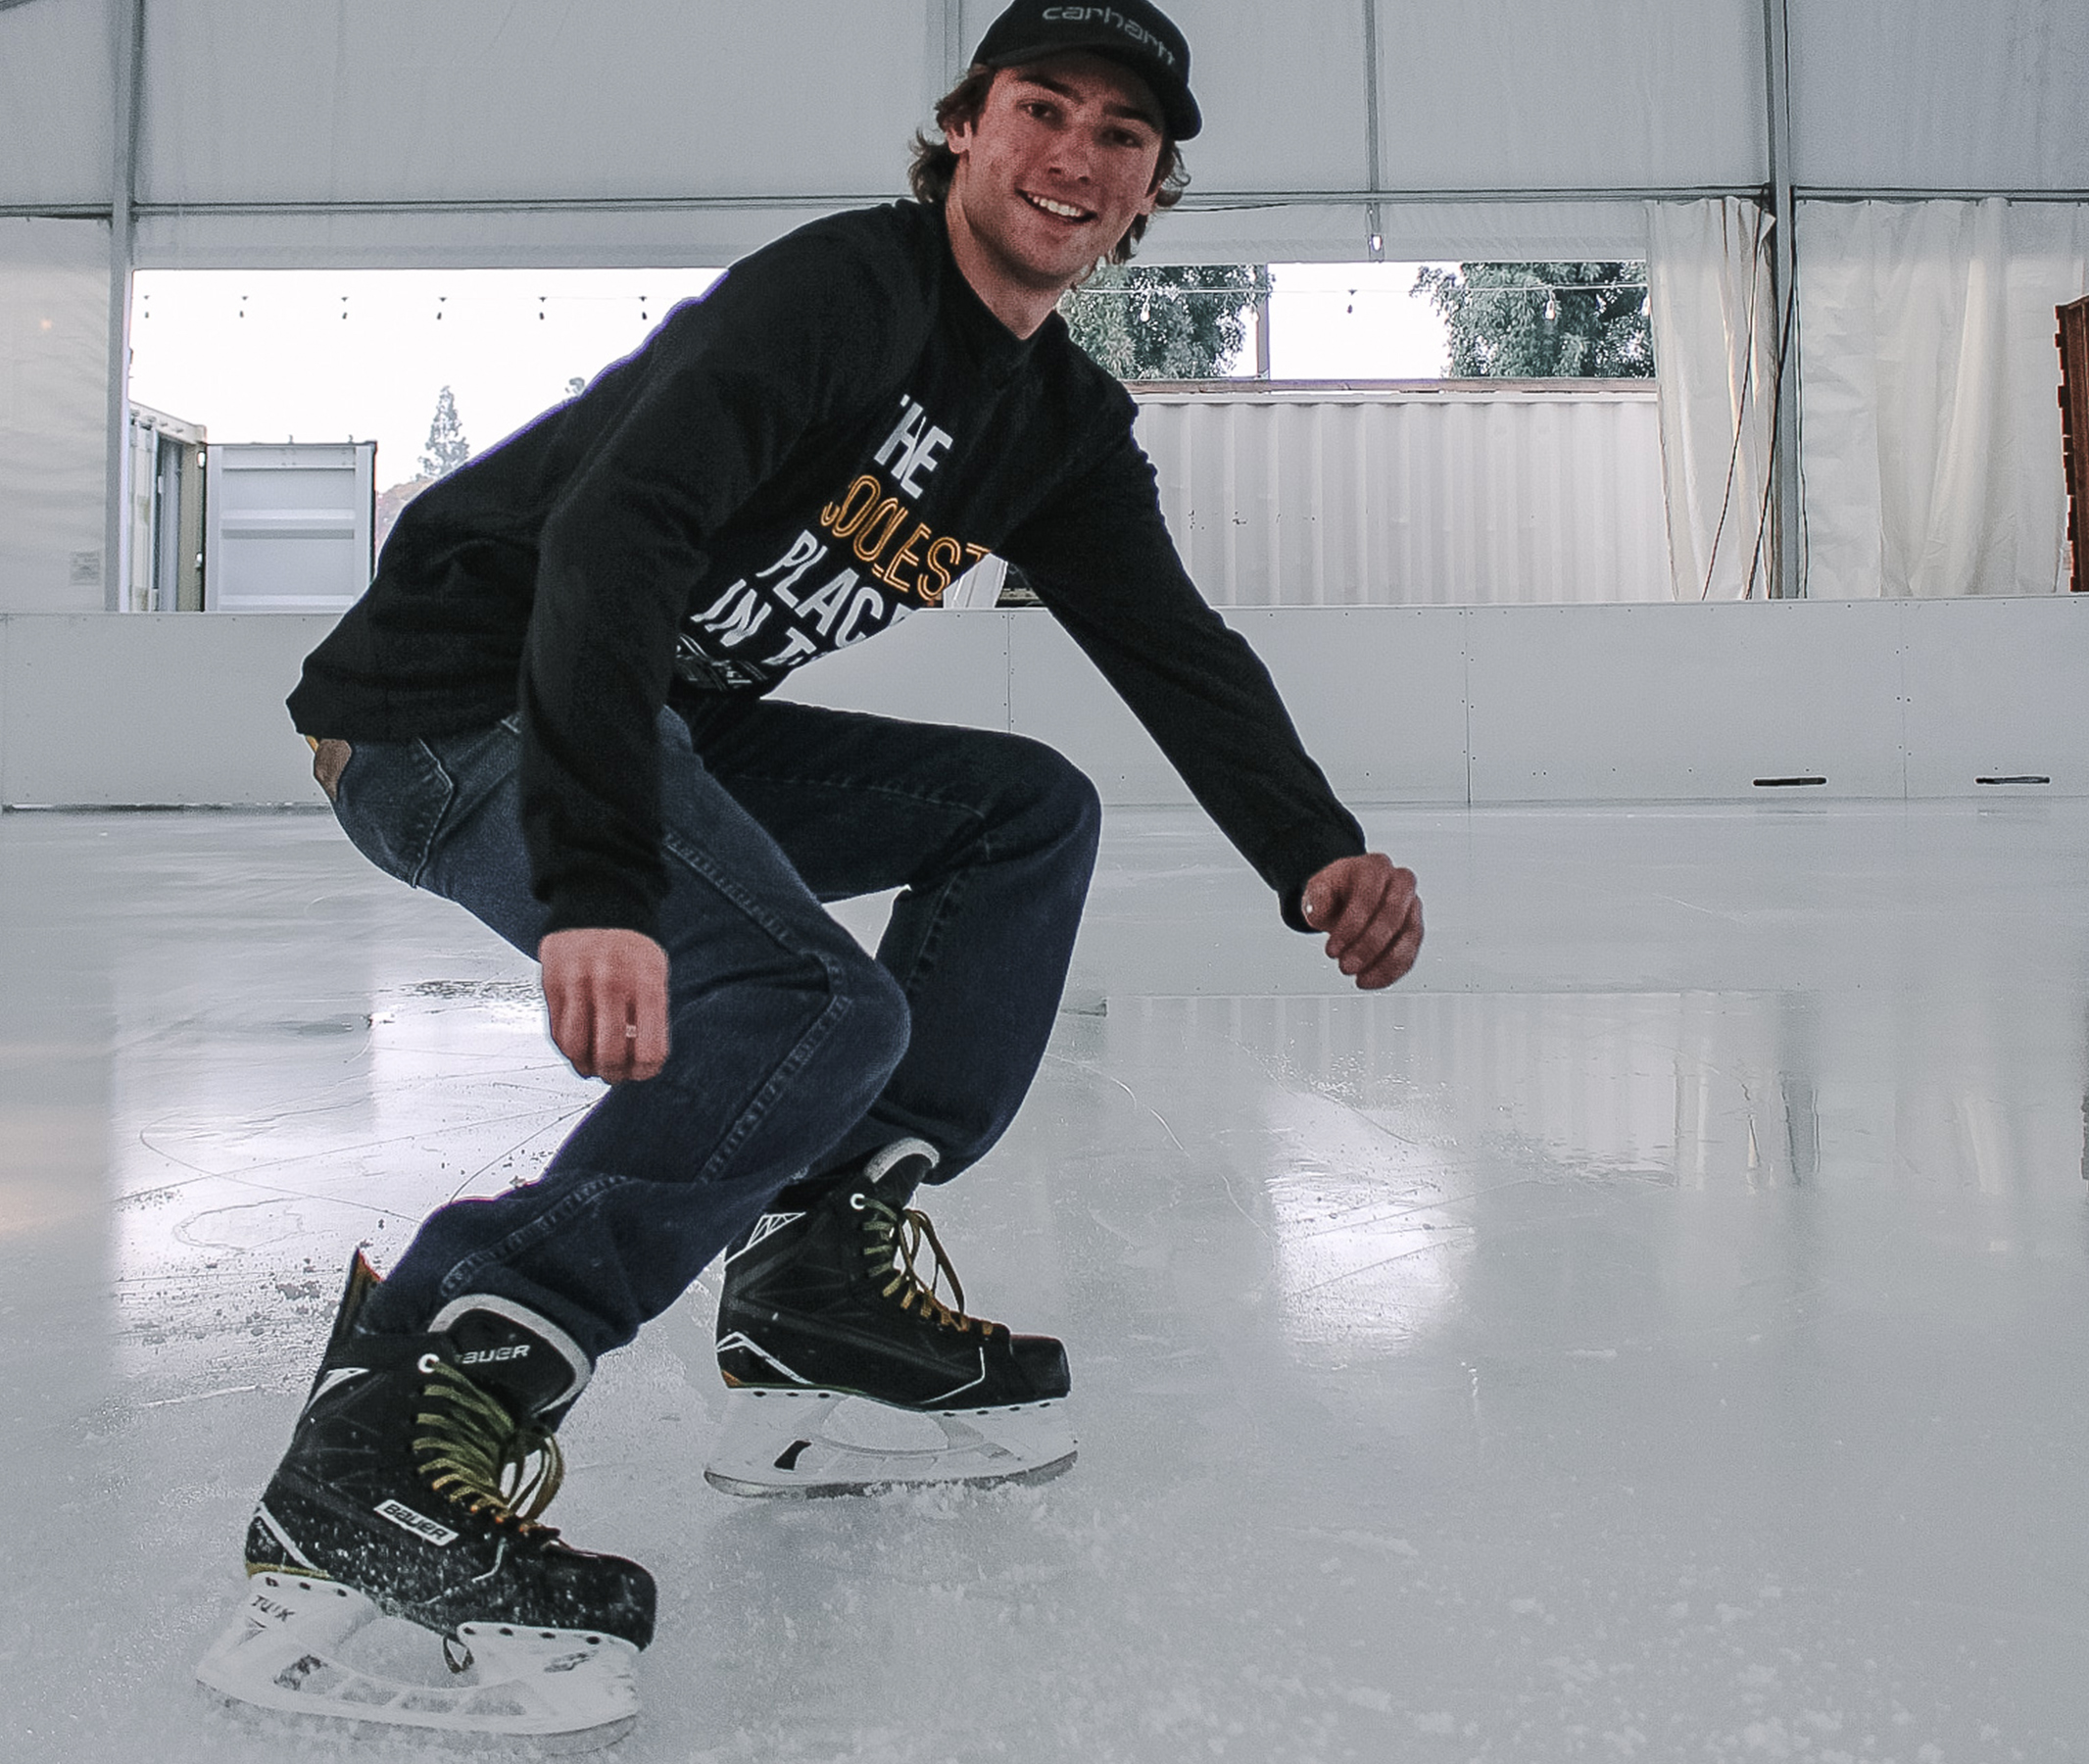 Brandon - On my fourth year with Modesto on ice been skating for 4 years and playing hockey for about 3 years. I enjoy helping people learn to skate and seeing how much fun people can have. I want skaters to find confidence in their abilities and develop their skills.